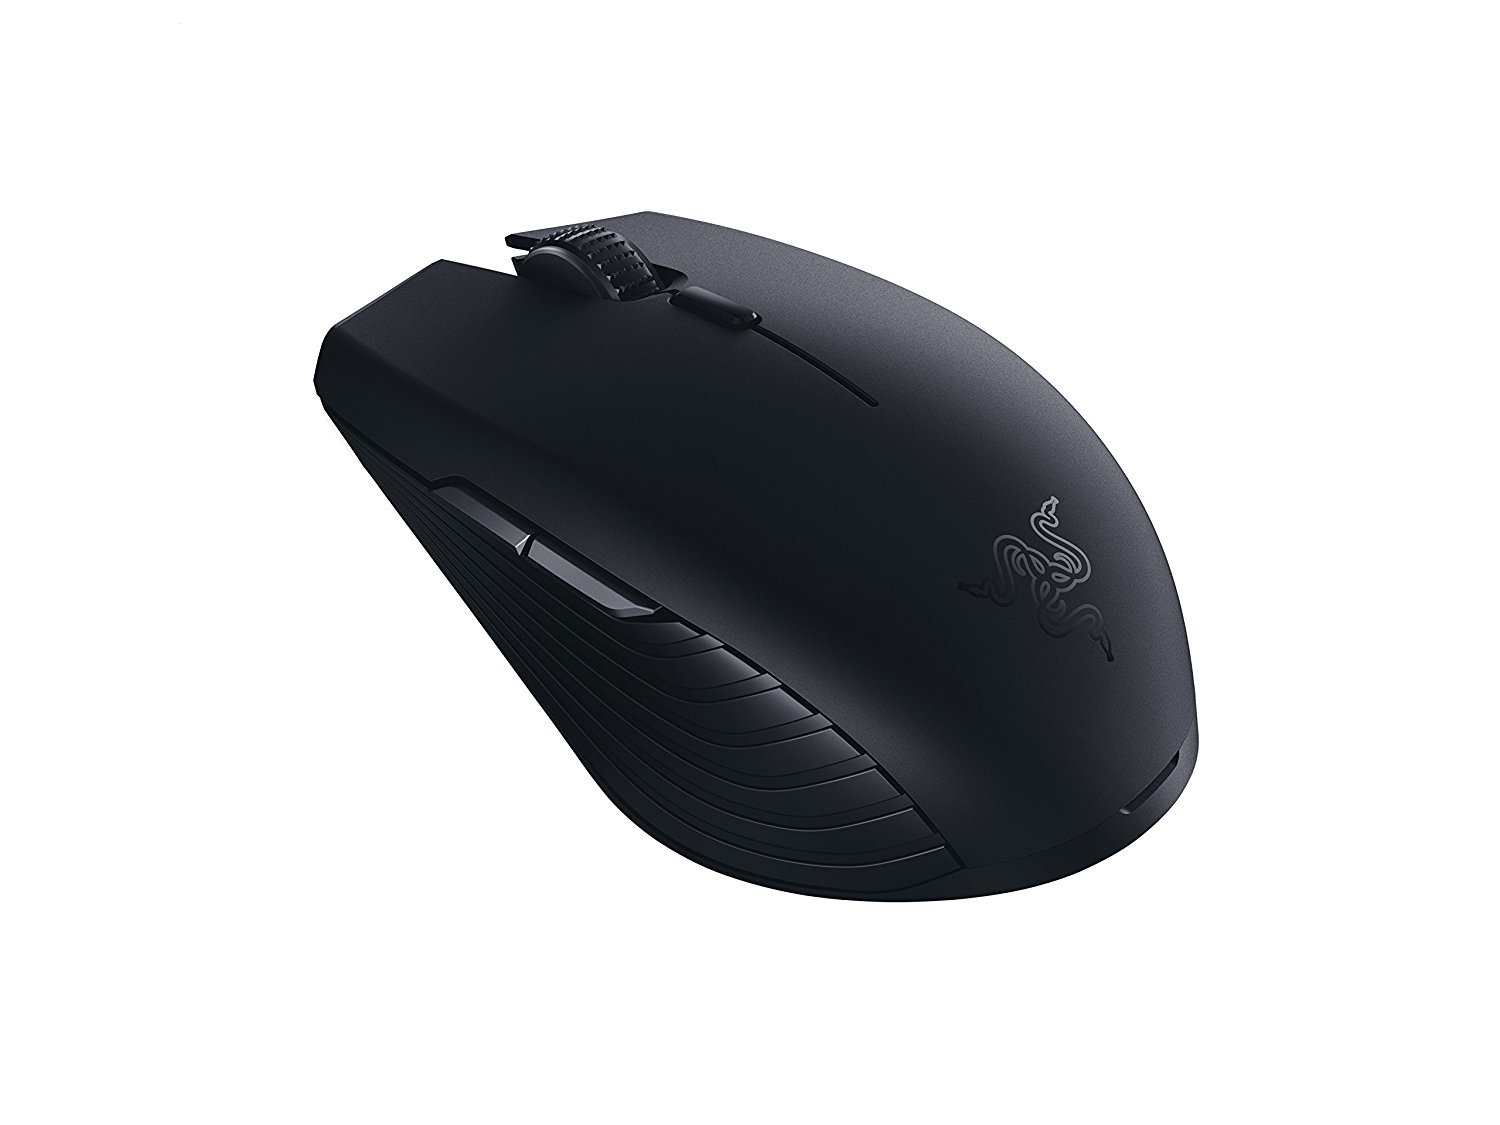 Razer Atheris Wireless Gaming Mouse for PC Games image